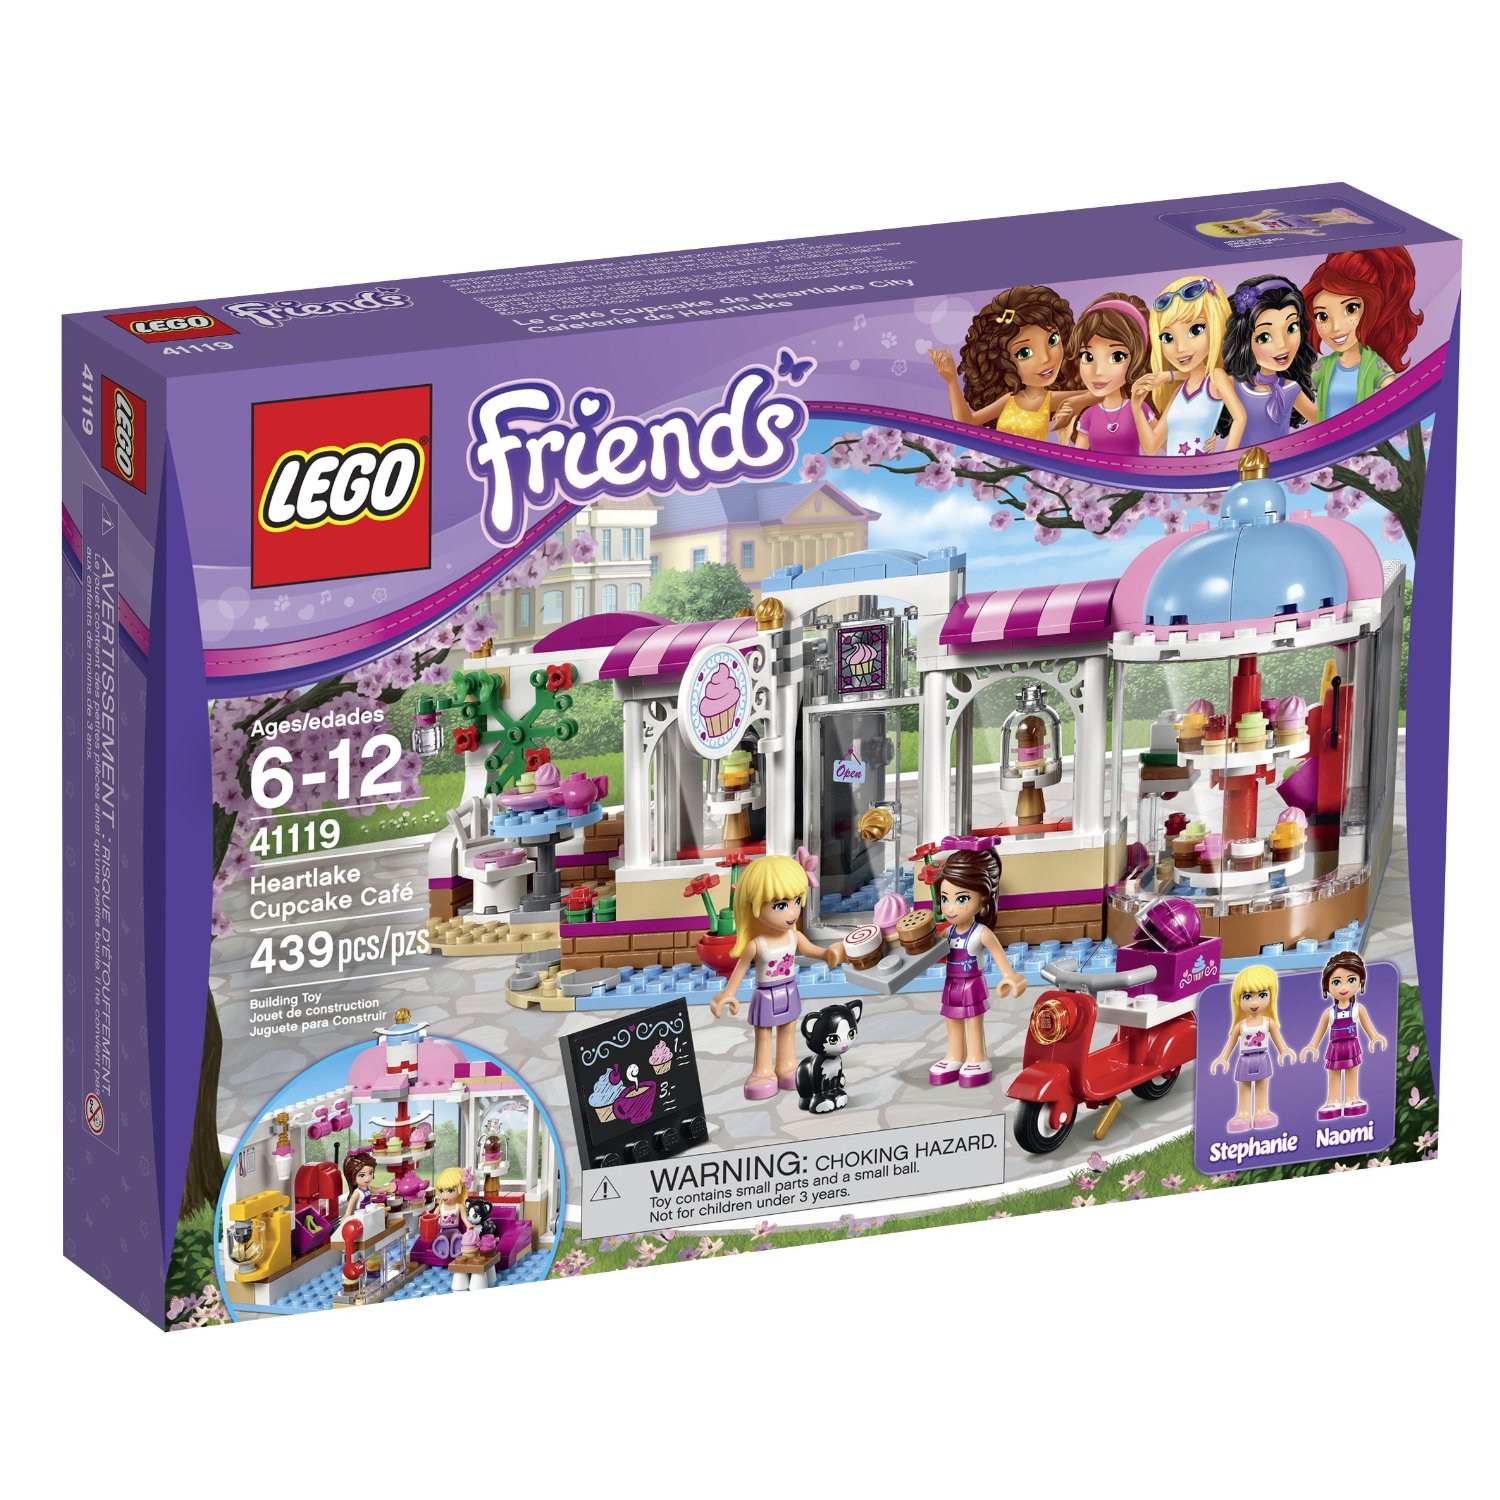 LEGO FRIENDS 41119 Heartlake Cupcake Cafe